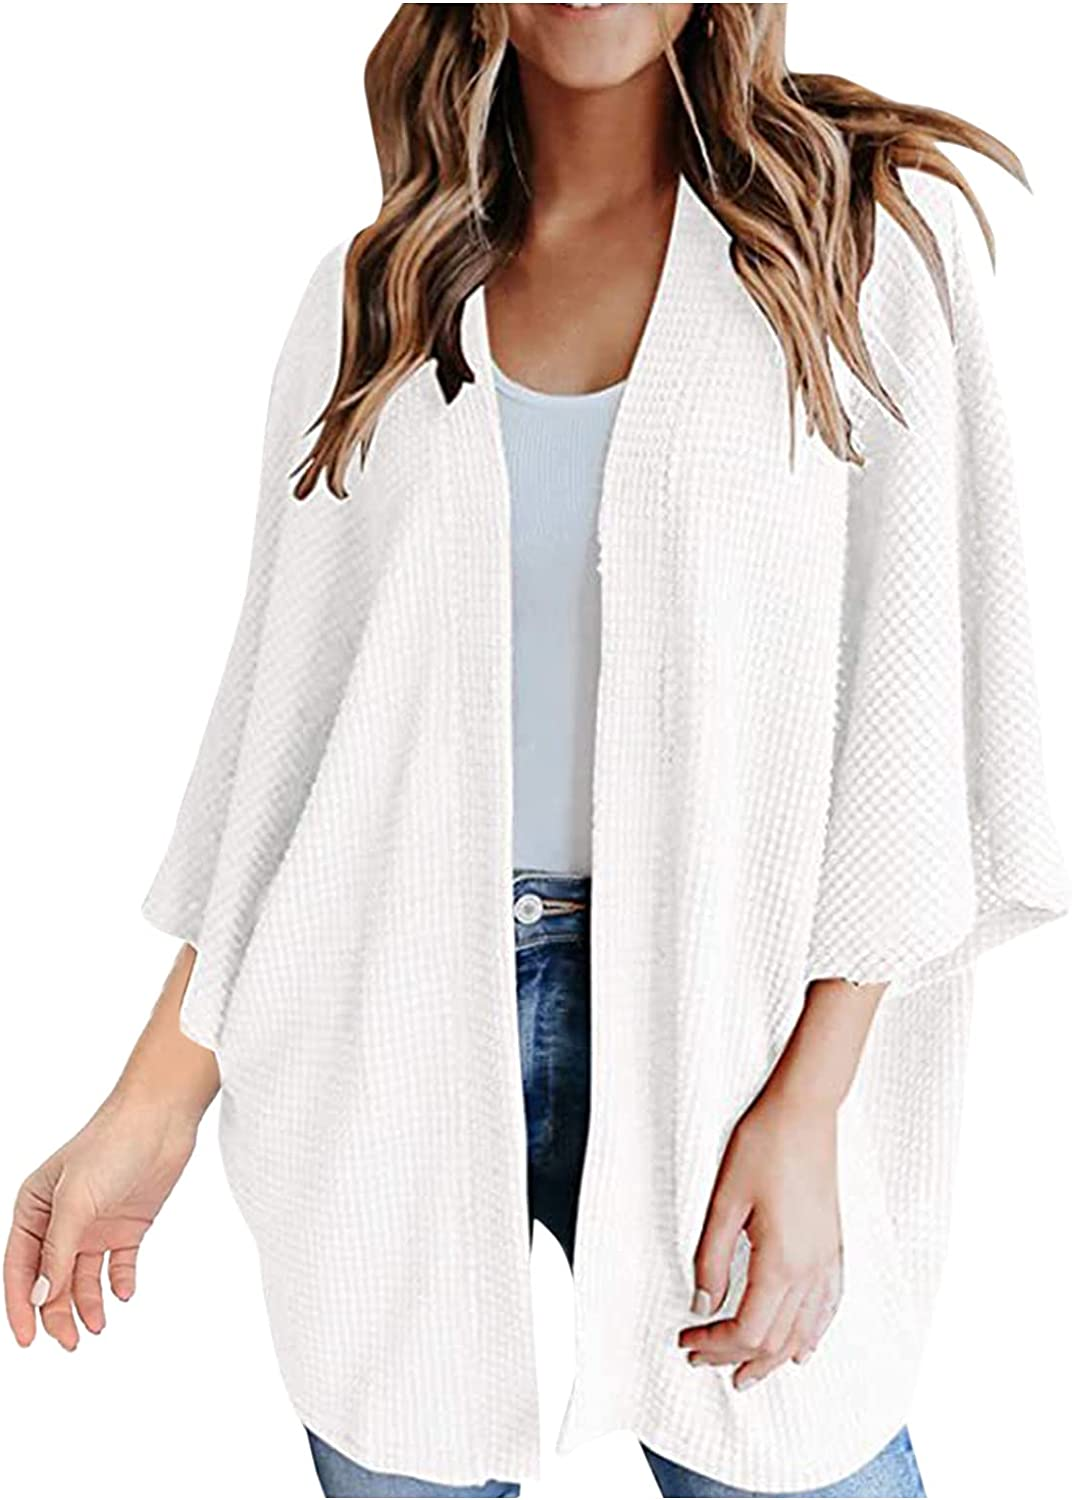 Women's Cardigan Sweater Kimono Open Front Cardigans Loose Waffle Knit 3/4 Batwing Sleeve Beach Cover Up Coat Blouse